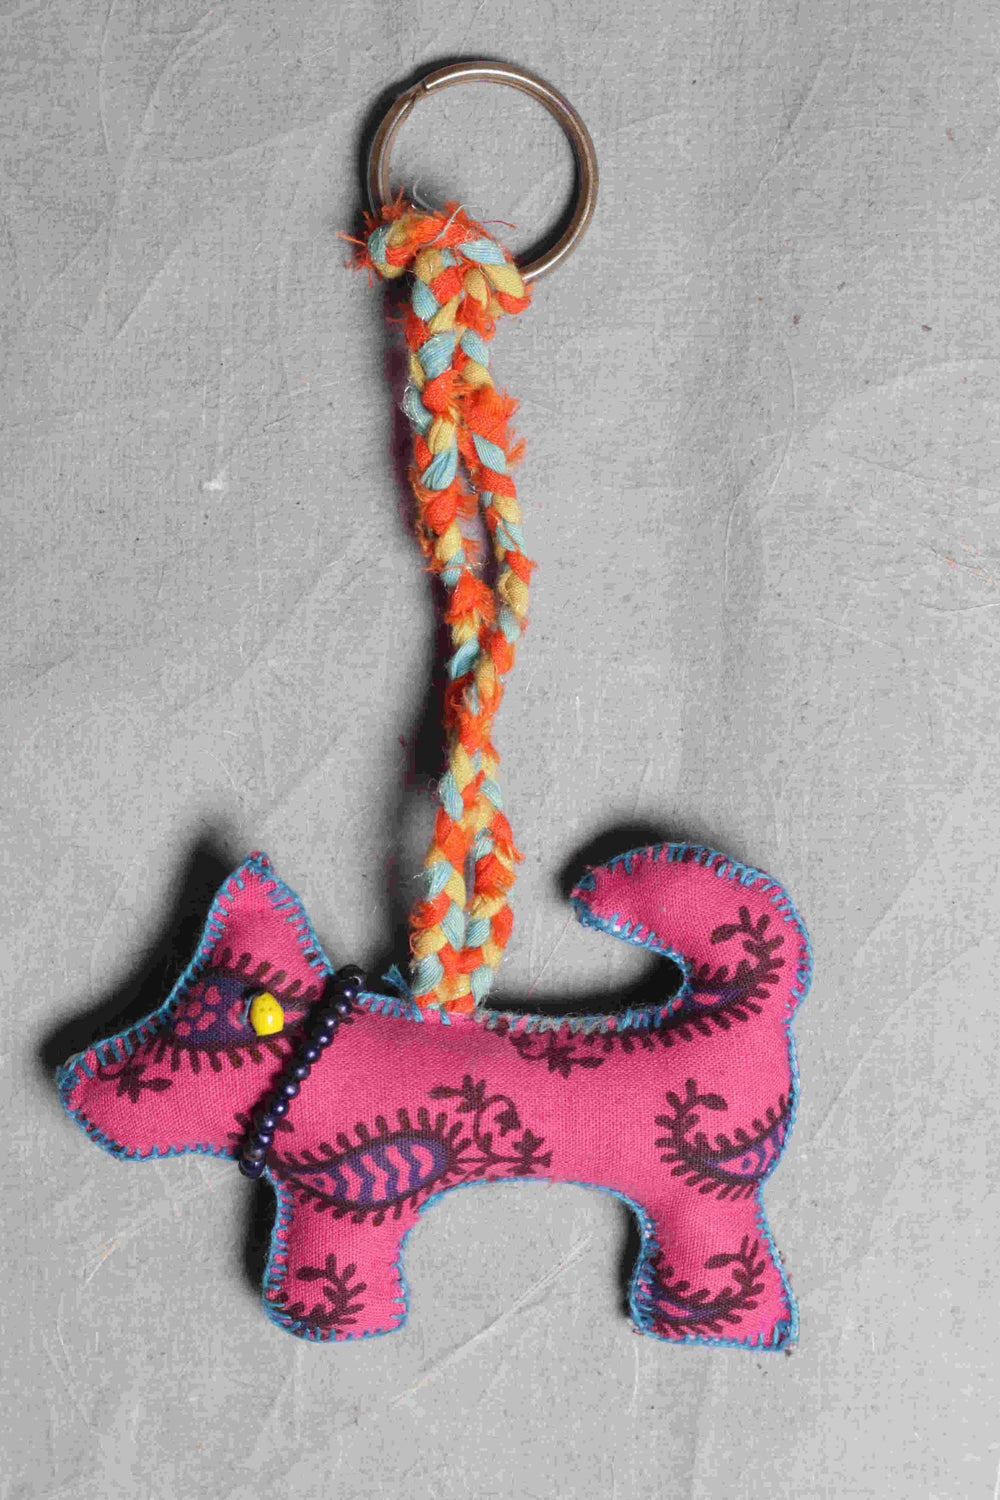 Paisley Doggie Handcrafted Fabric Car Hanging and Key Chain